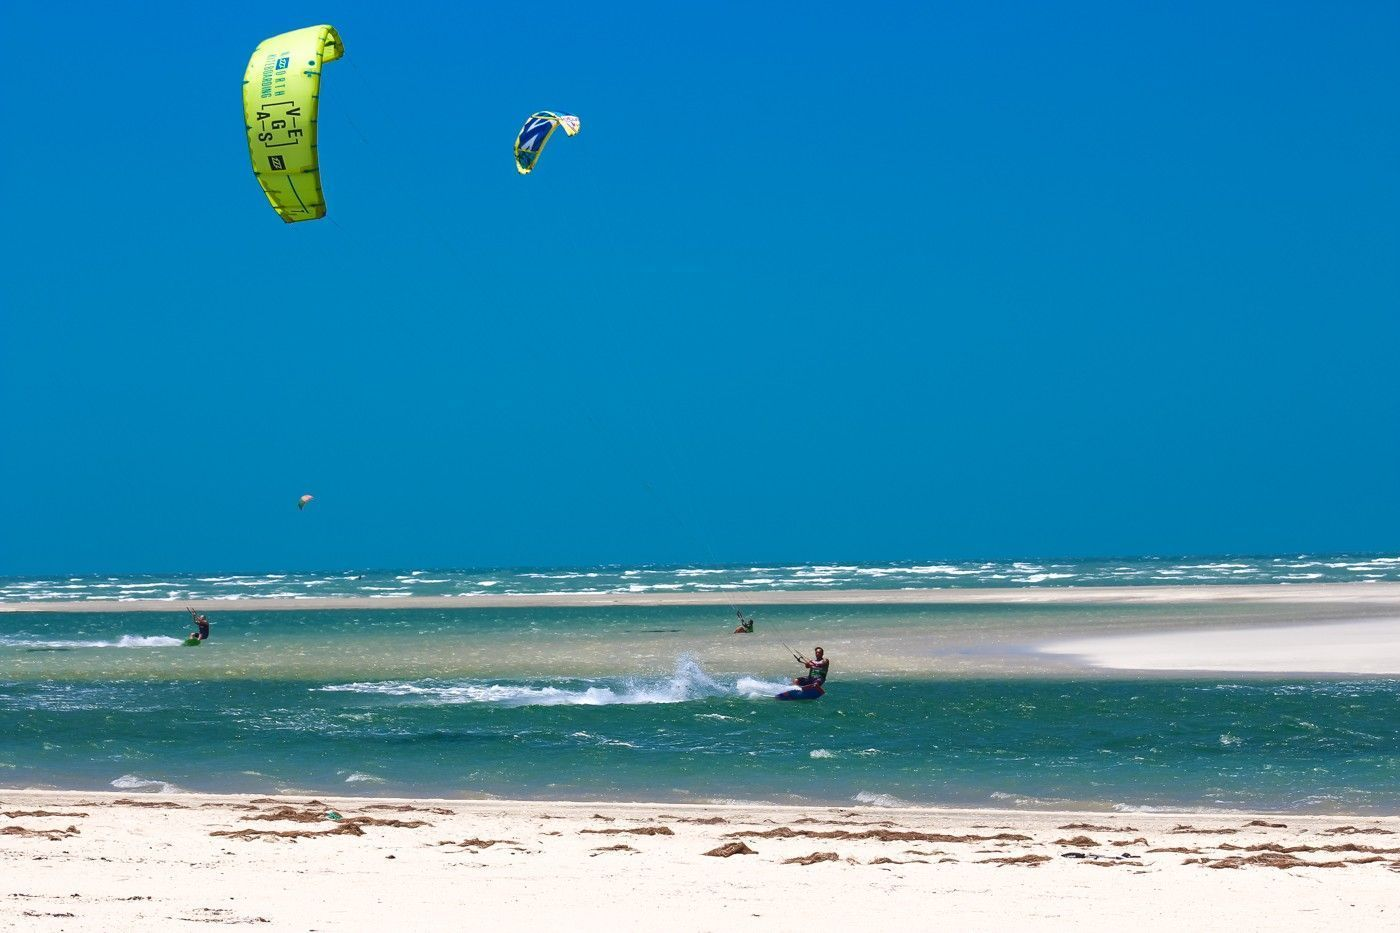 Pin by bstoked on Kitesurfing Waves, World, Brazil